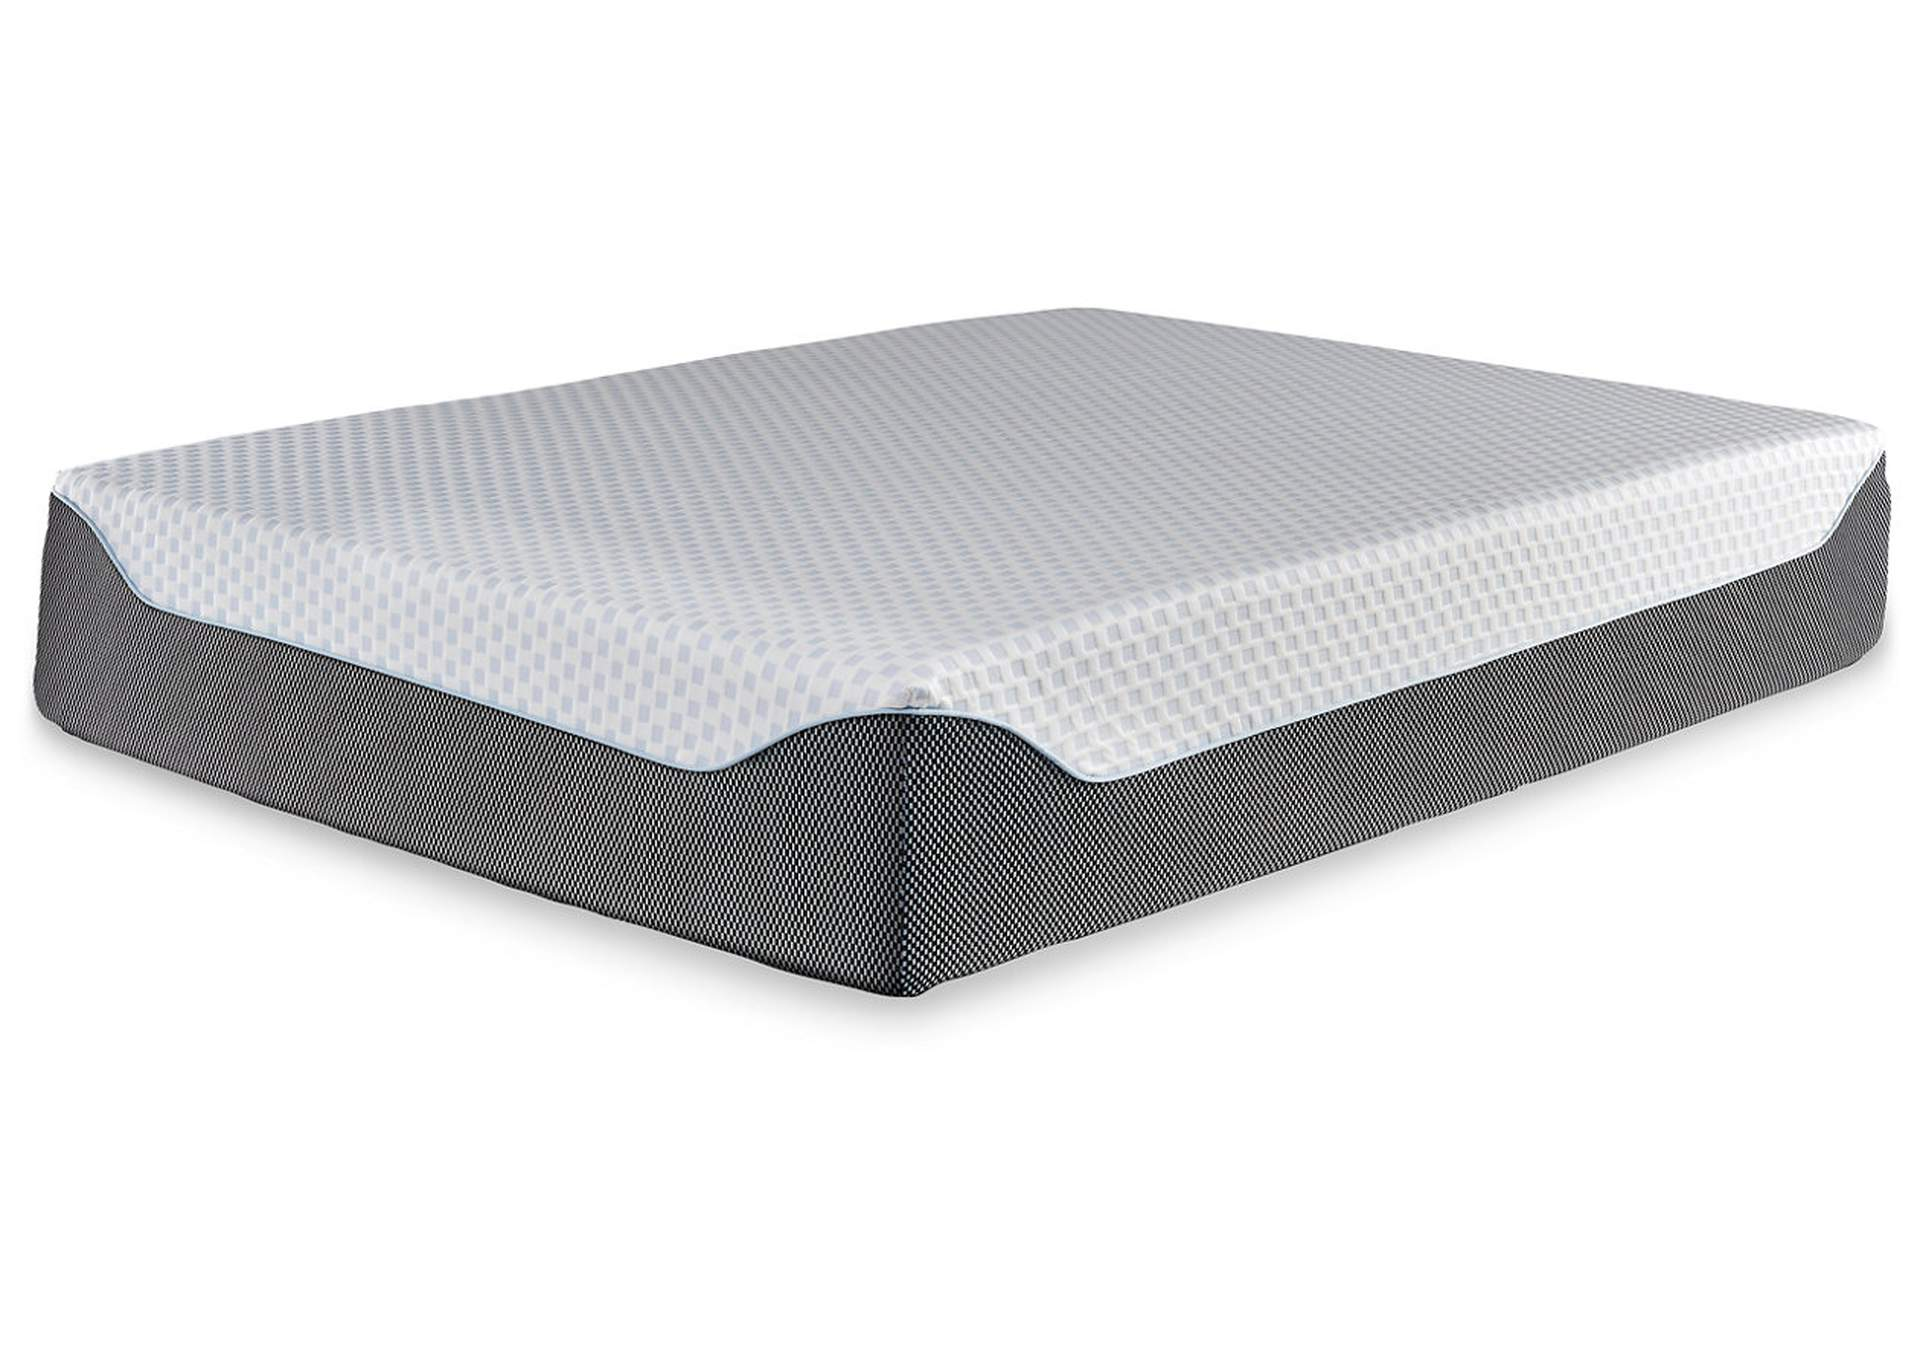 Chime Elite 14 Inch Memory Foam Queen Mattress,Direct To Consumer Express